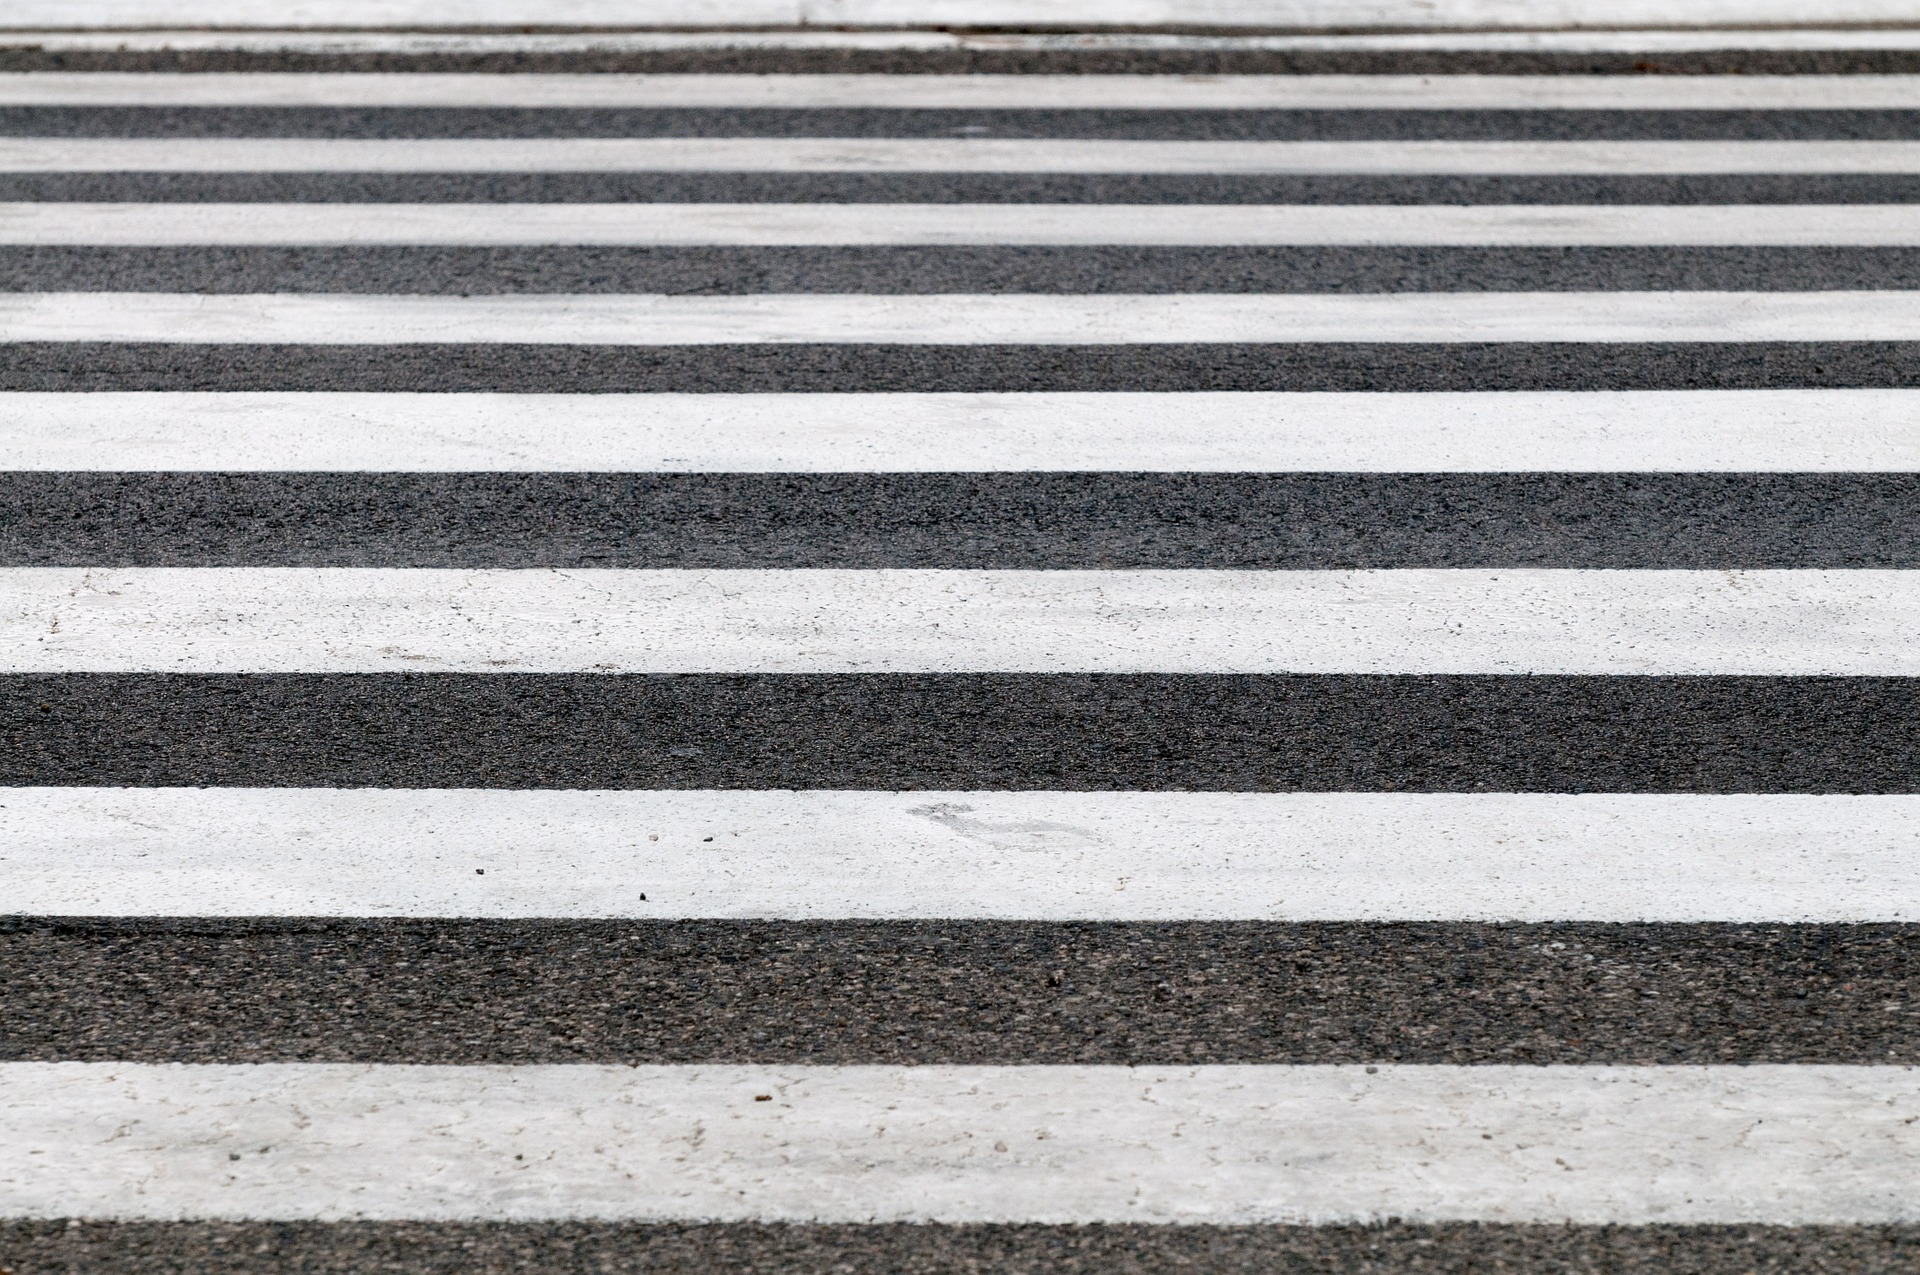 zebra crossing Greece